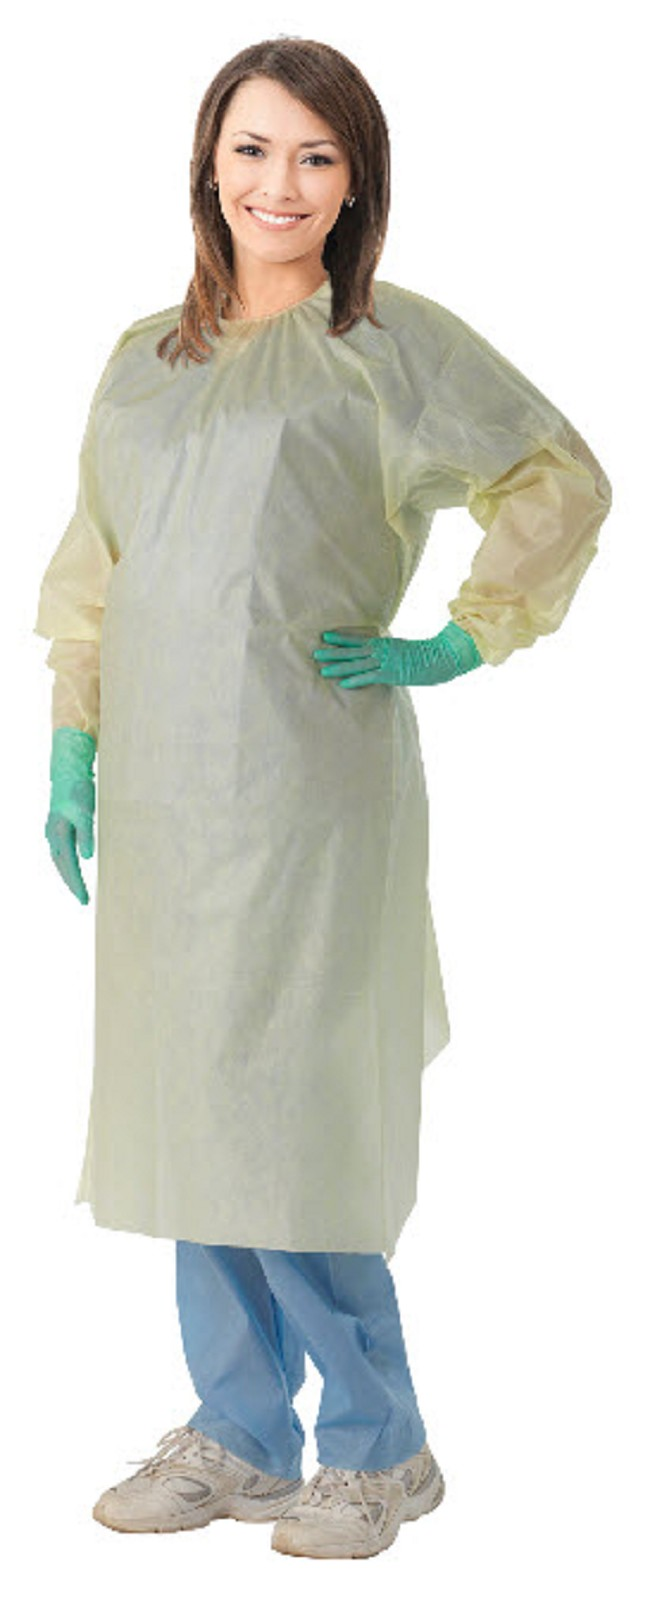 AAMI Level 2 Isolation Gowns - FREE Shipping